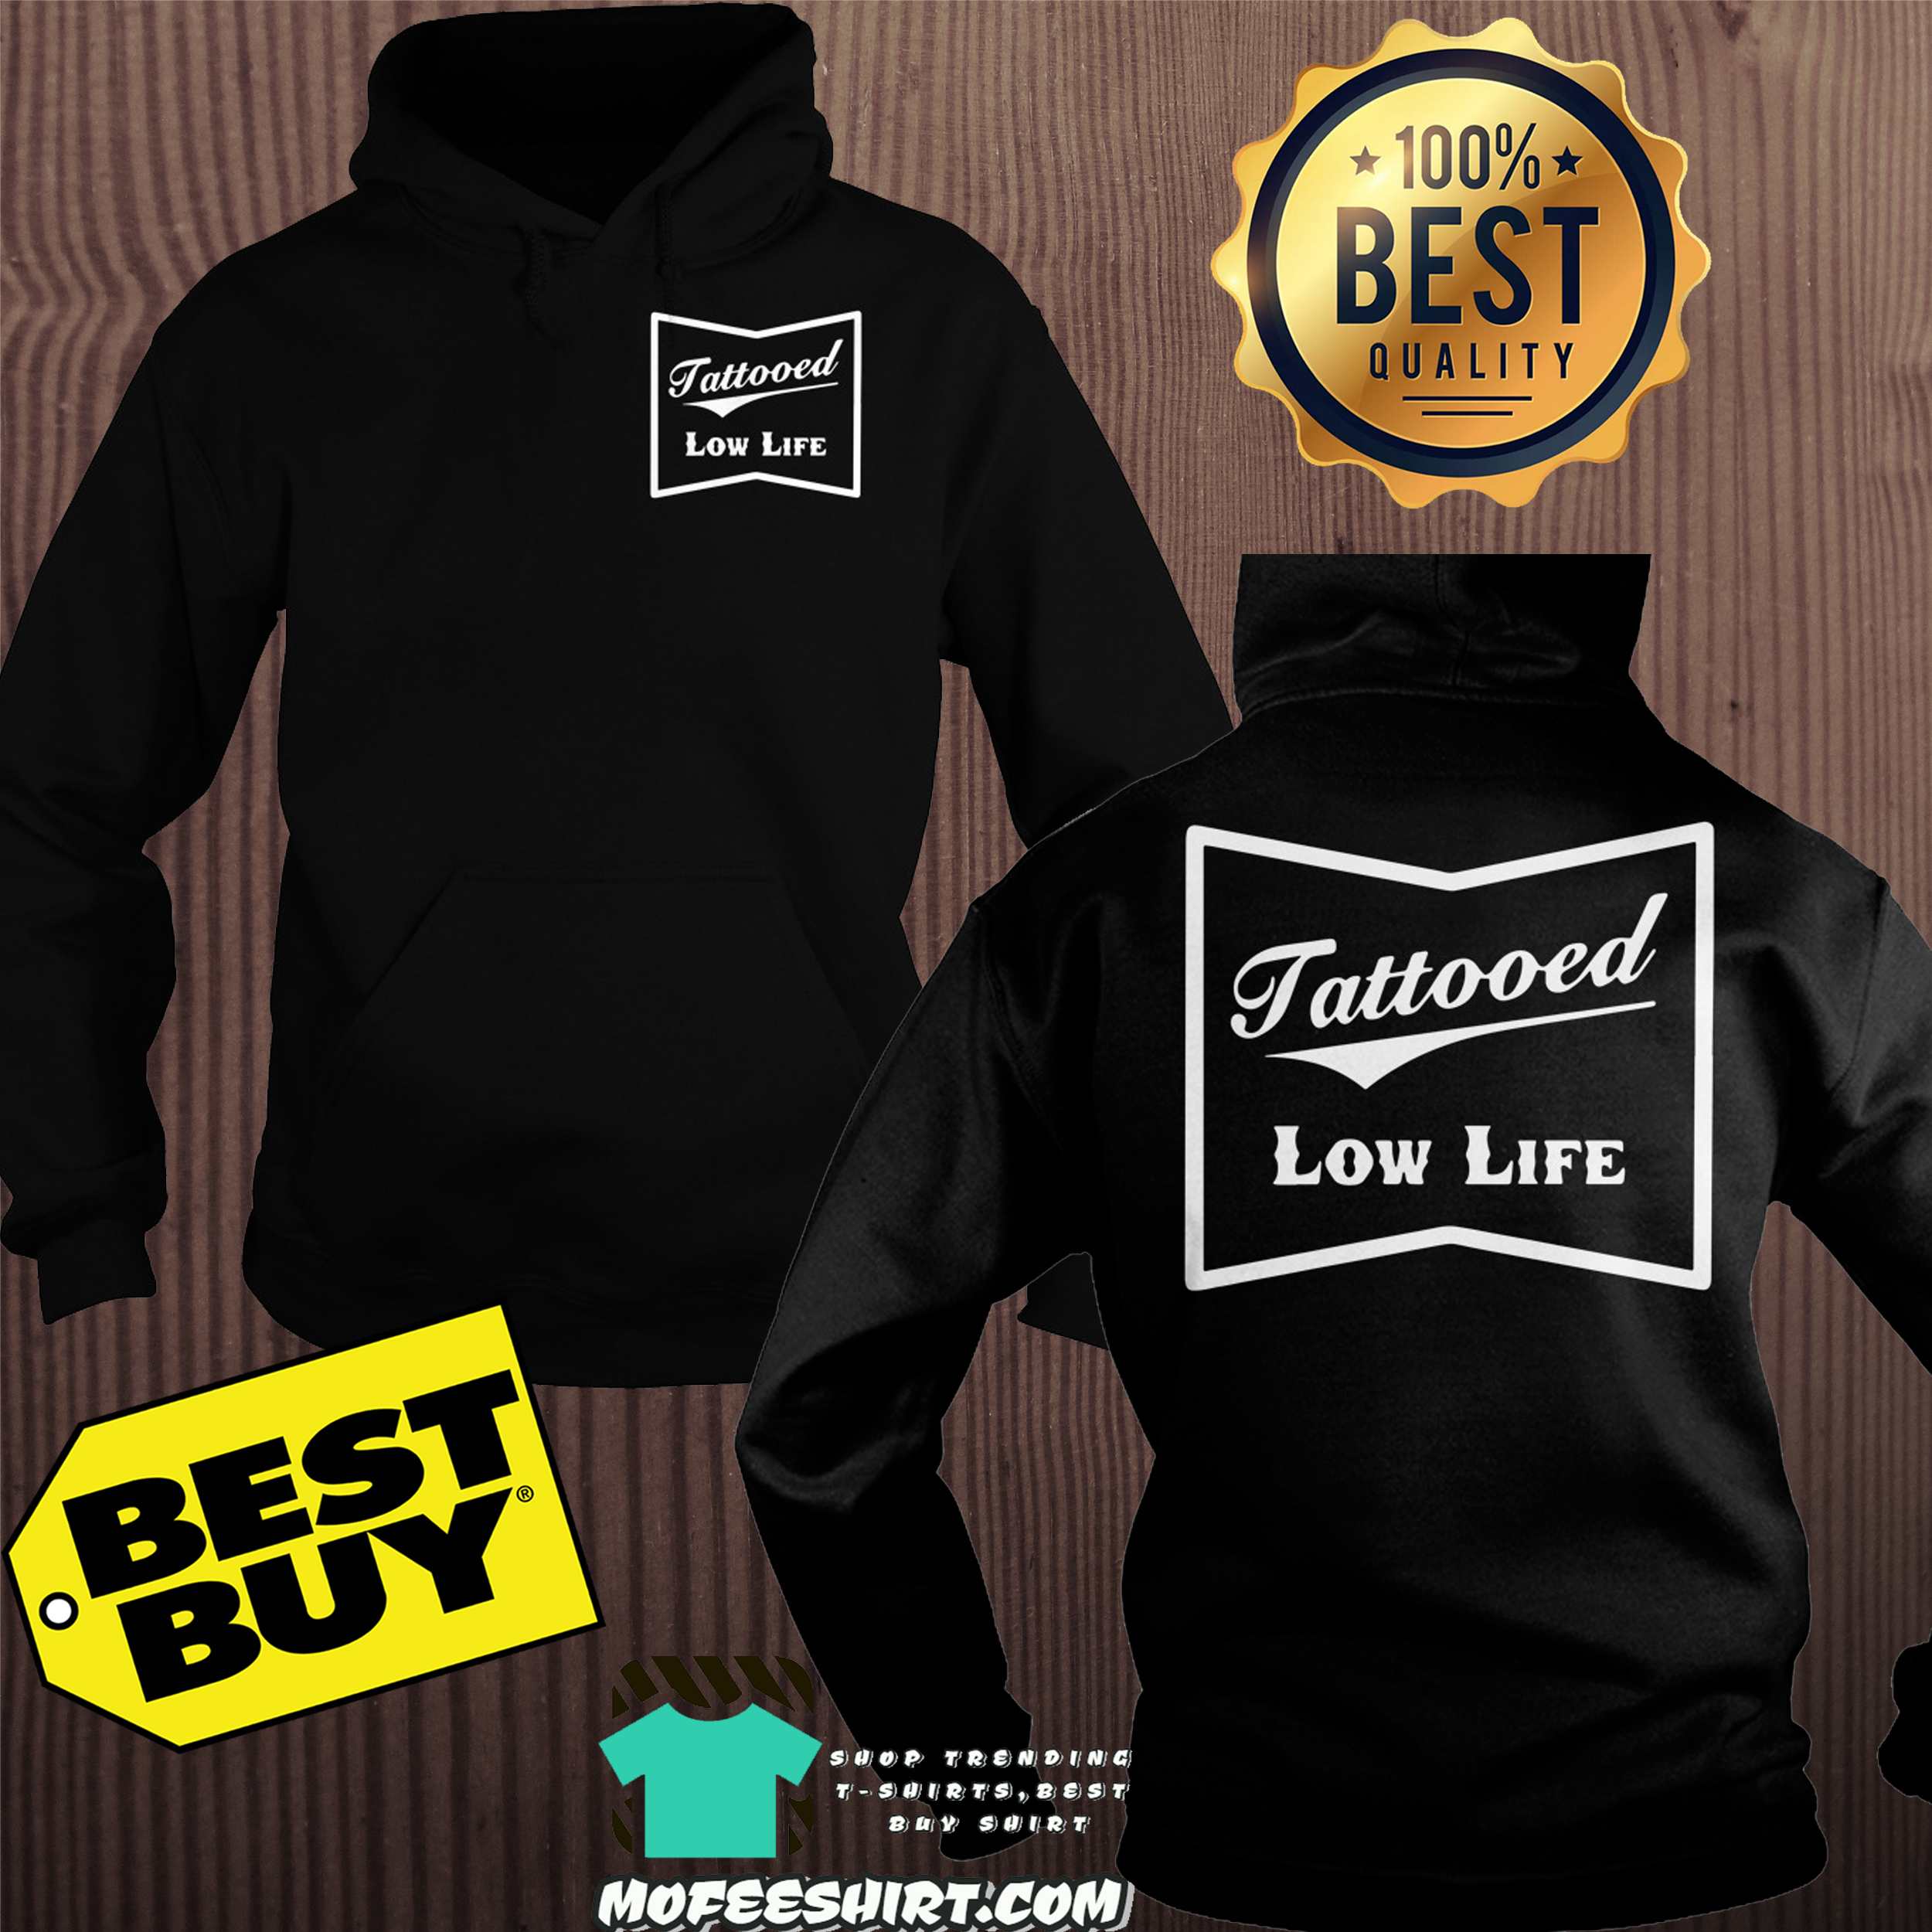 Official Tattooed low life hoodie